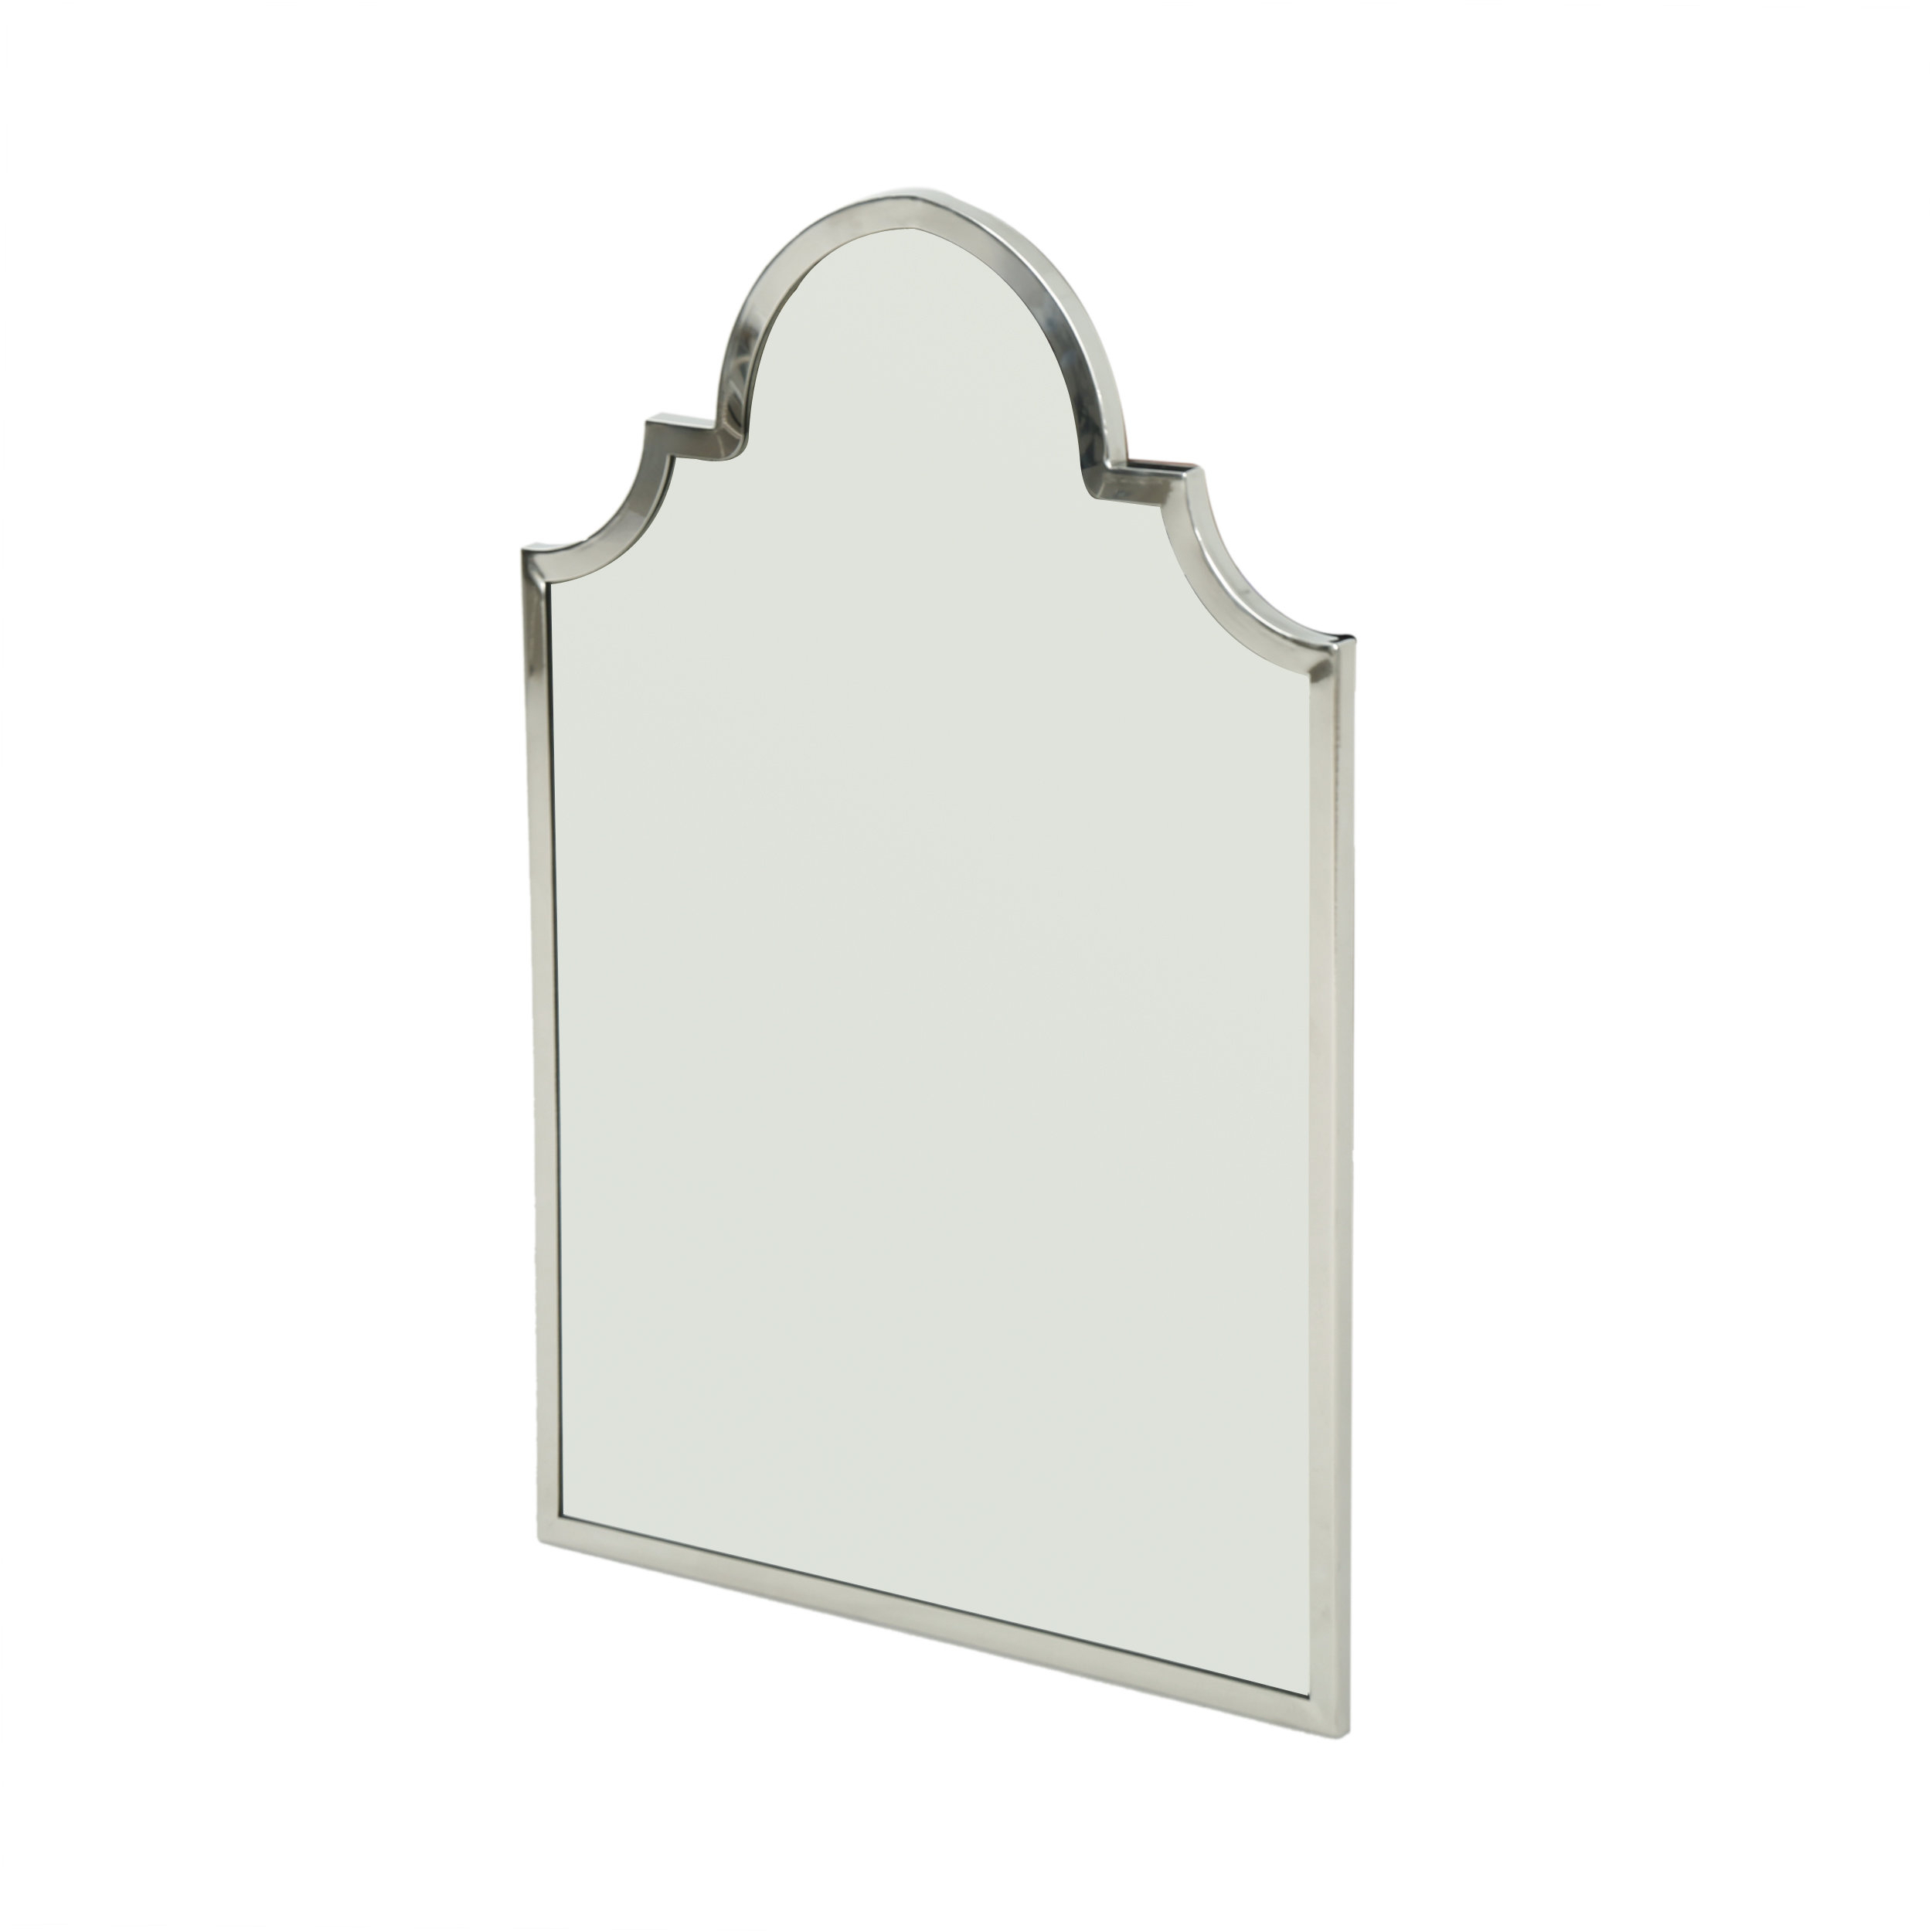 Cassel Accent Mirror throughout Dariel Tall Arched Scalloped Wall Mirrors (Image 7 of 30)